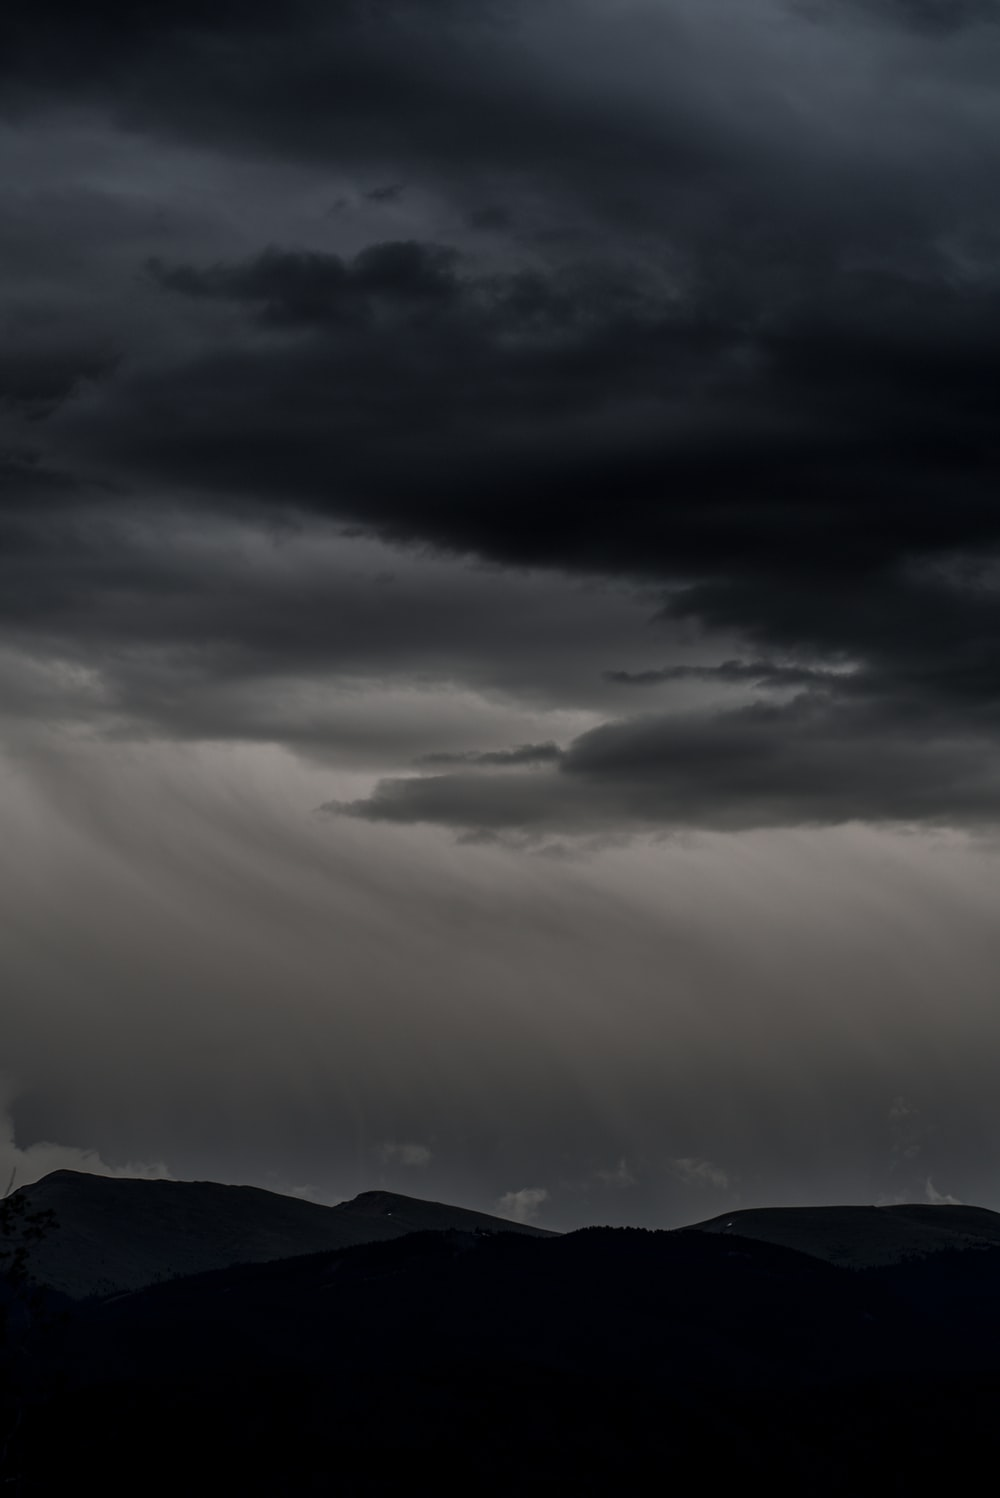 silhouette of mountain under dramatic sky